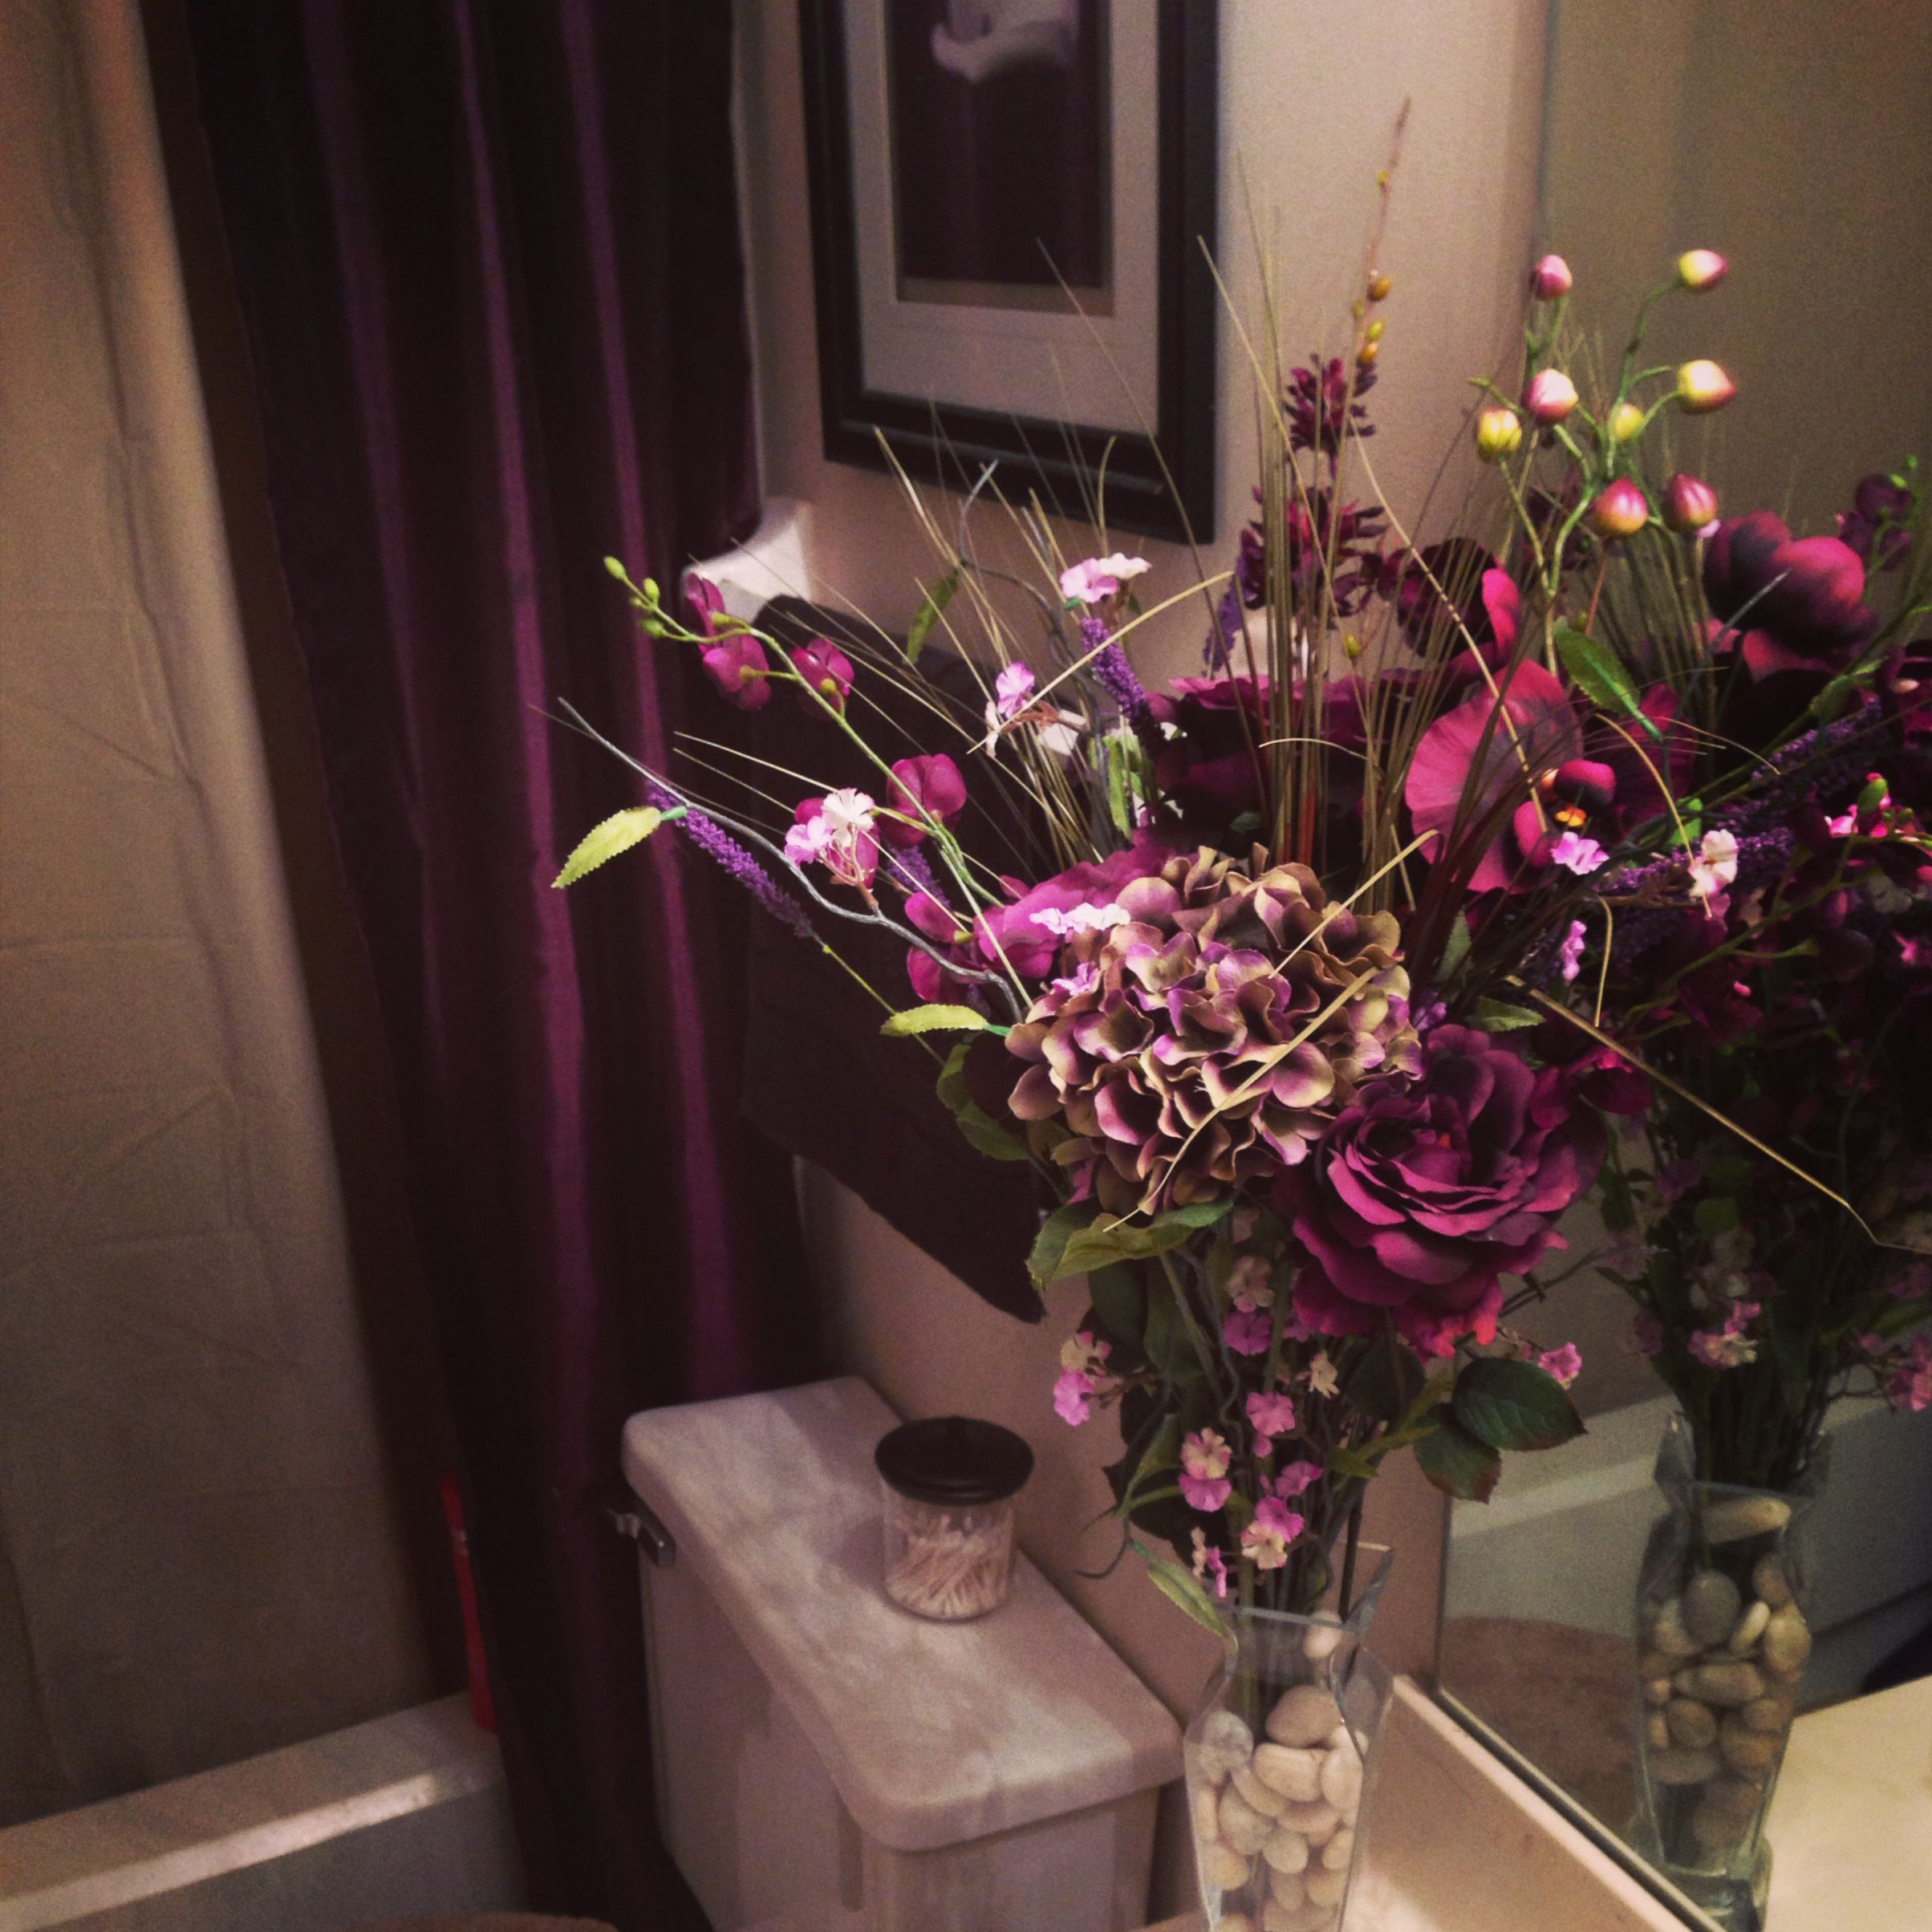 Deep Purple Shower Curtains And Flower Bouquet For A Small Bathroom